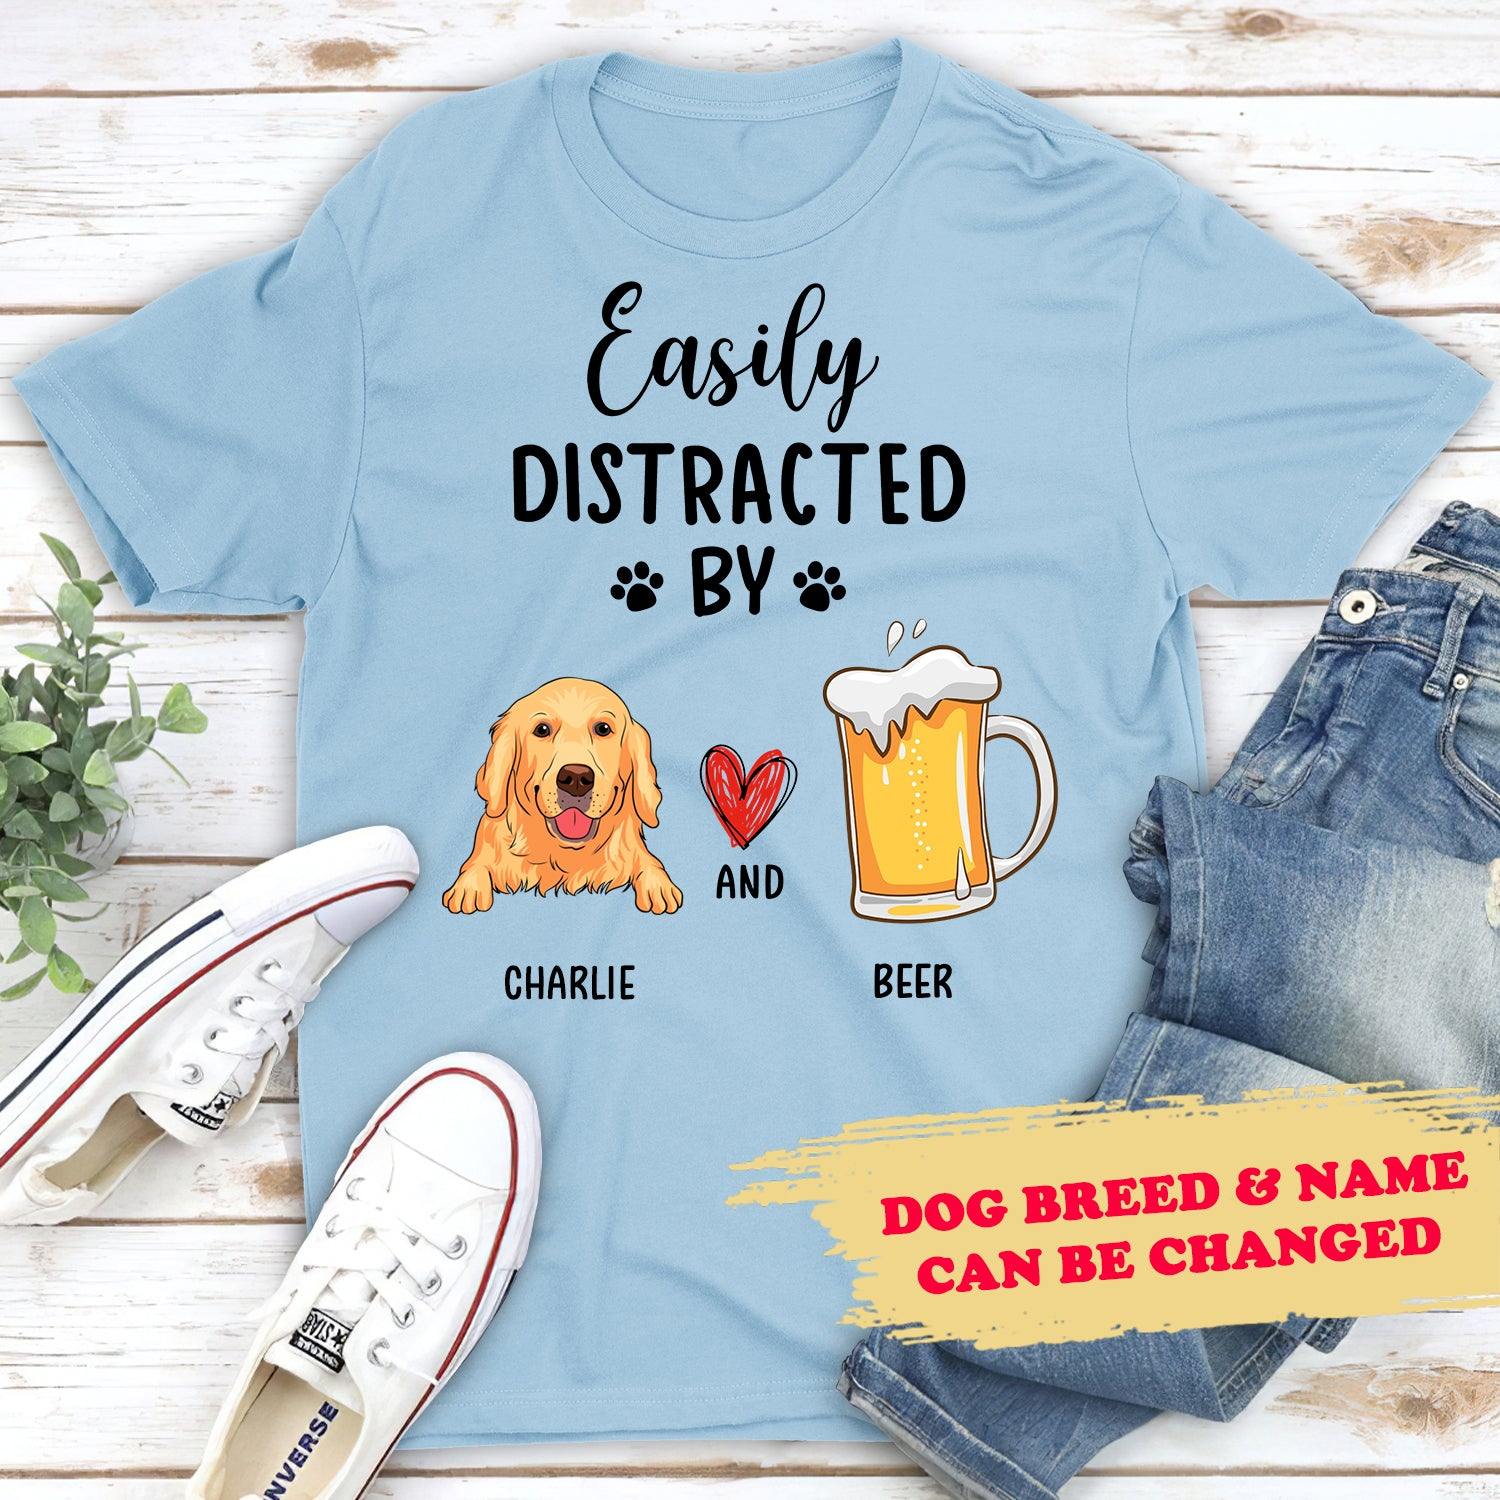 Easily Distracted By Dog & Beer - Personalized Custom Unisex T-shirt - 3048